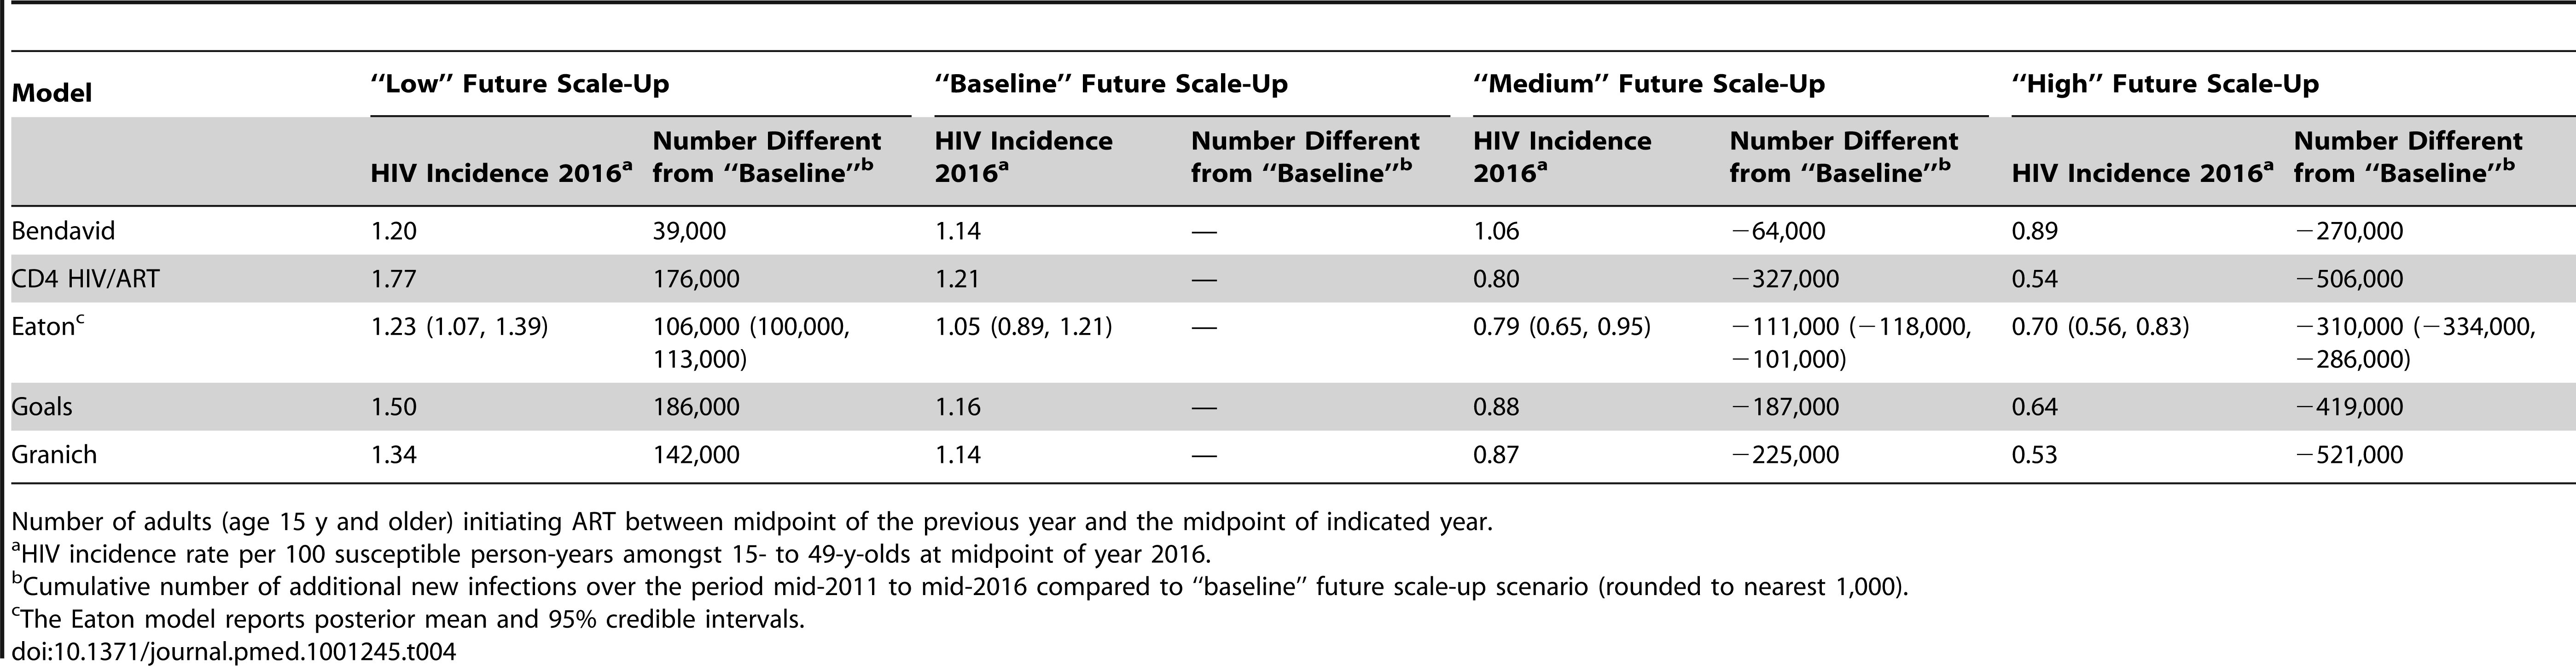 HIV incidence rate per 100 person-years in year 2016 for different potential scenarios of future ART scale-up.